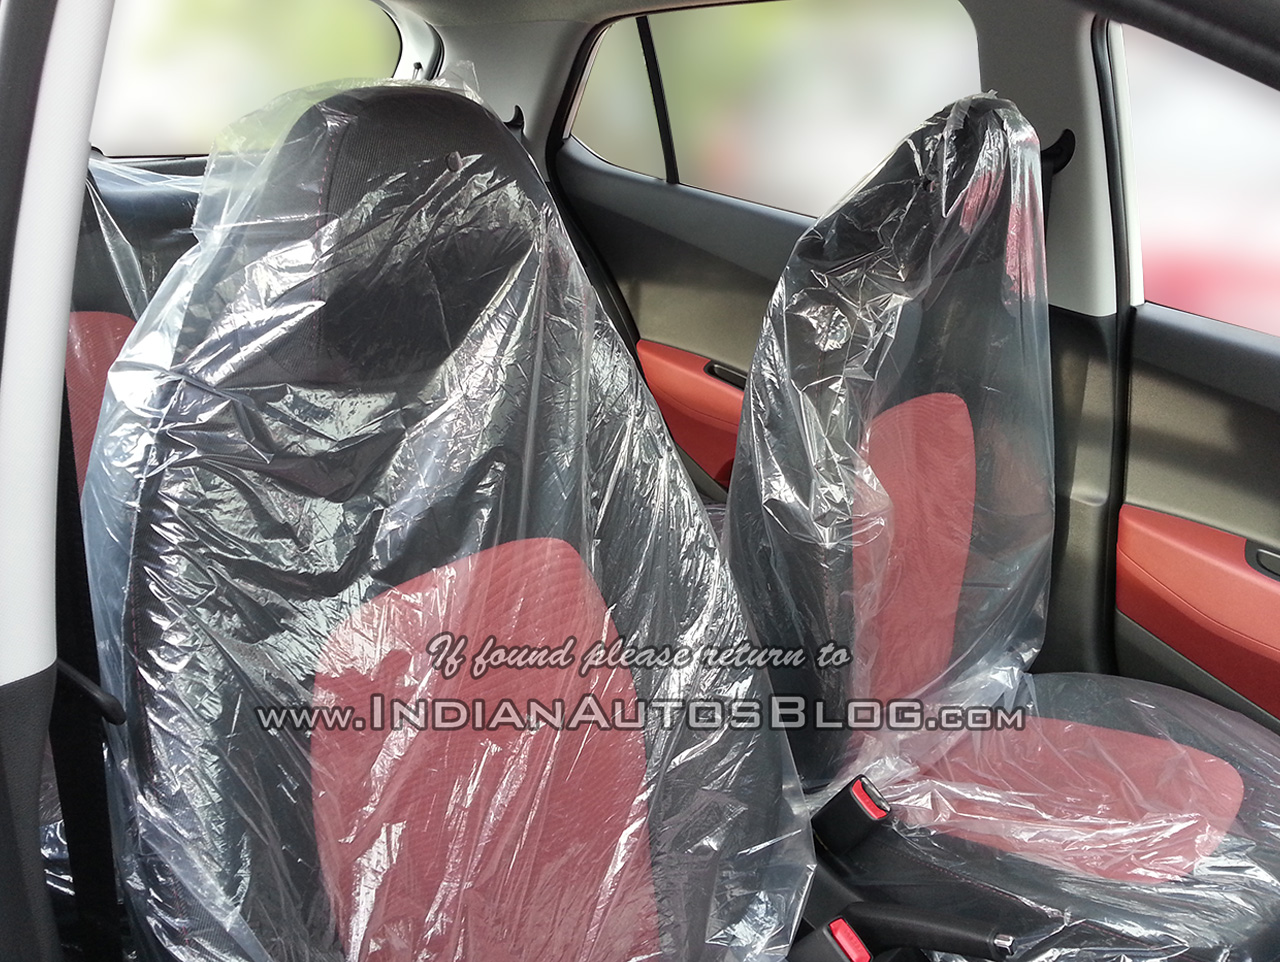 Hyundai Grand i10 SportZ edition front seats